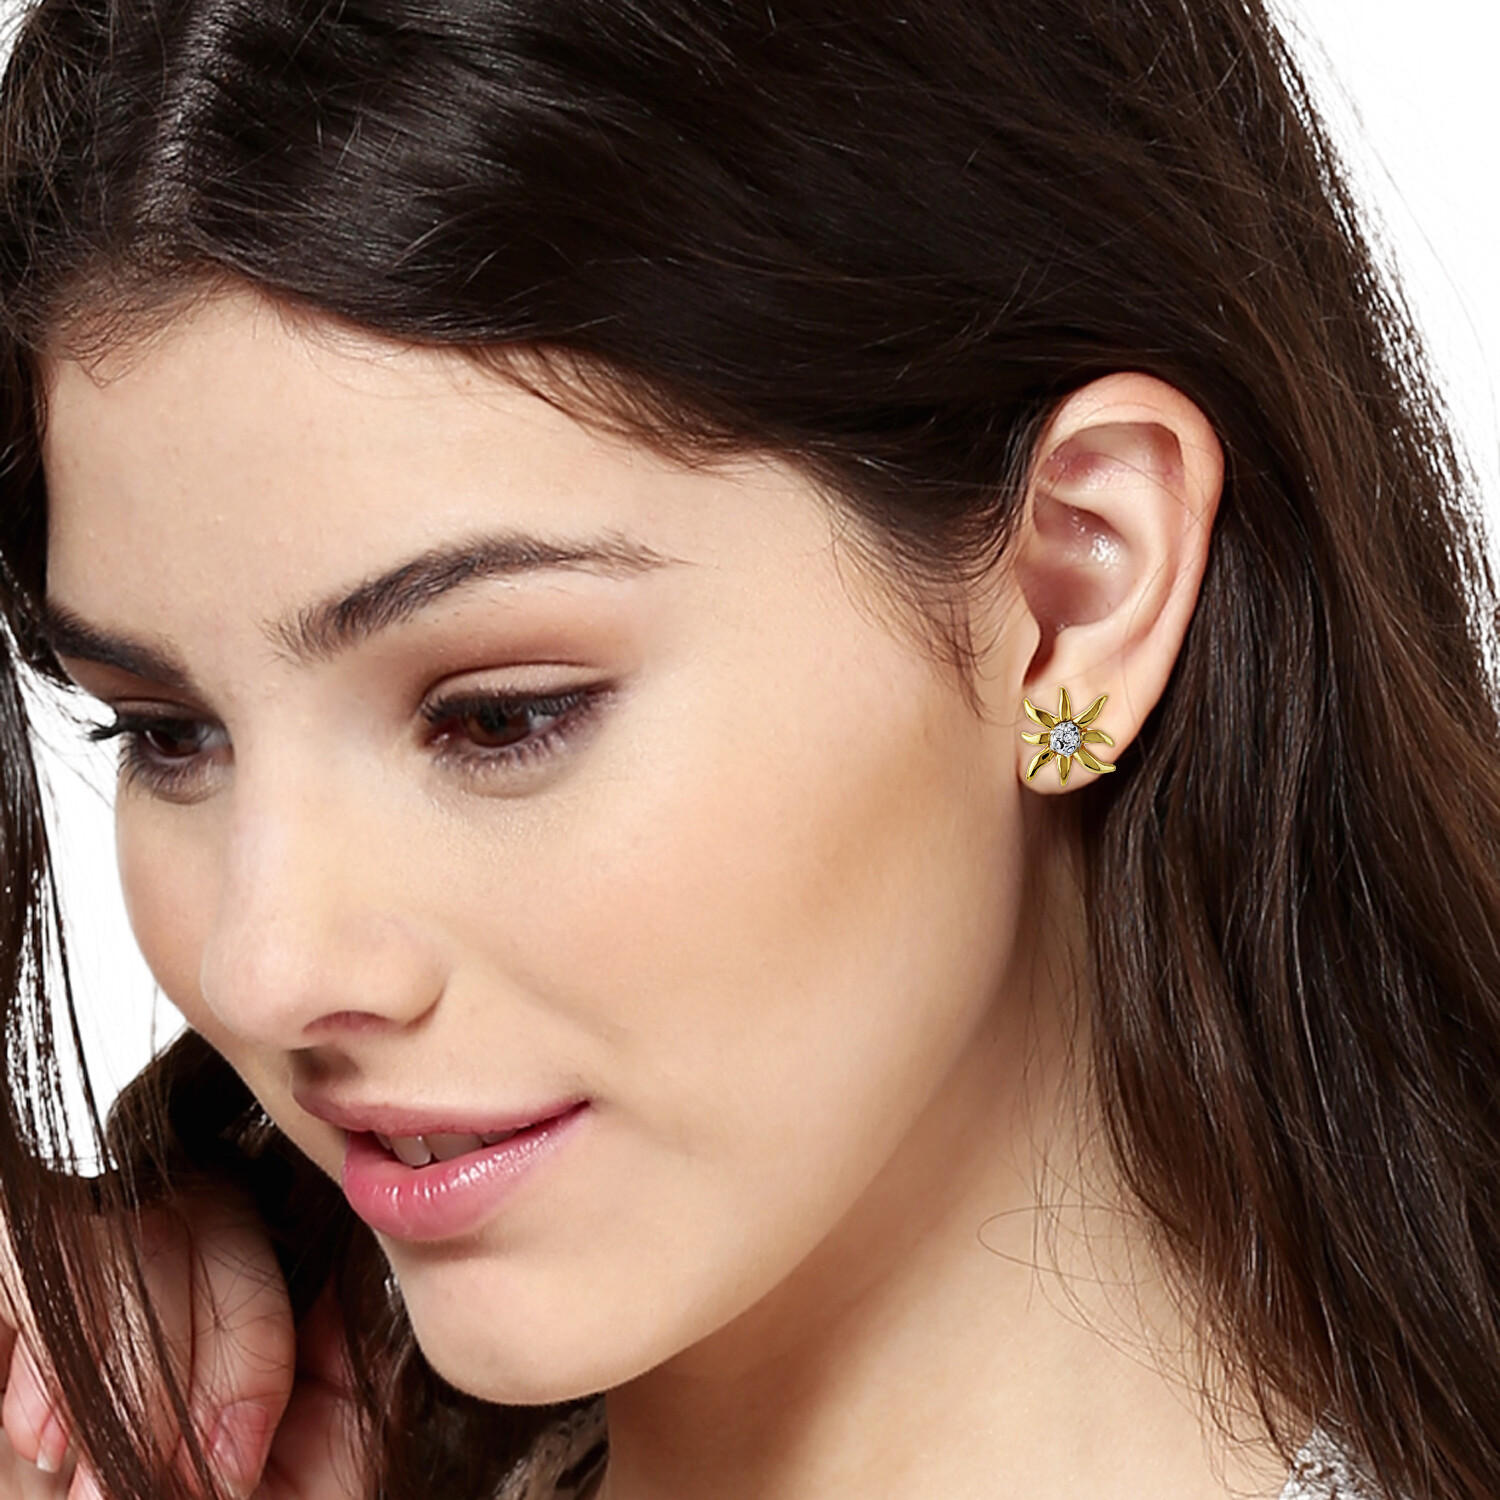 Estele Star Shaped Stud Earrings With White Crystal Stone